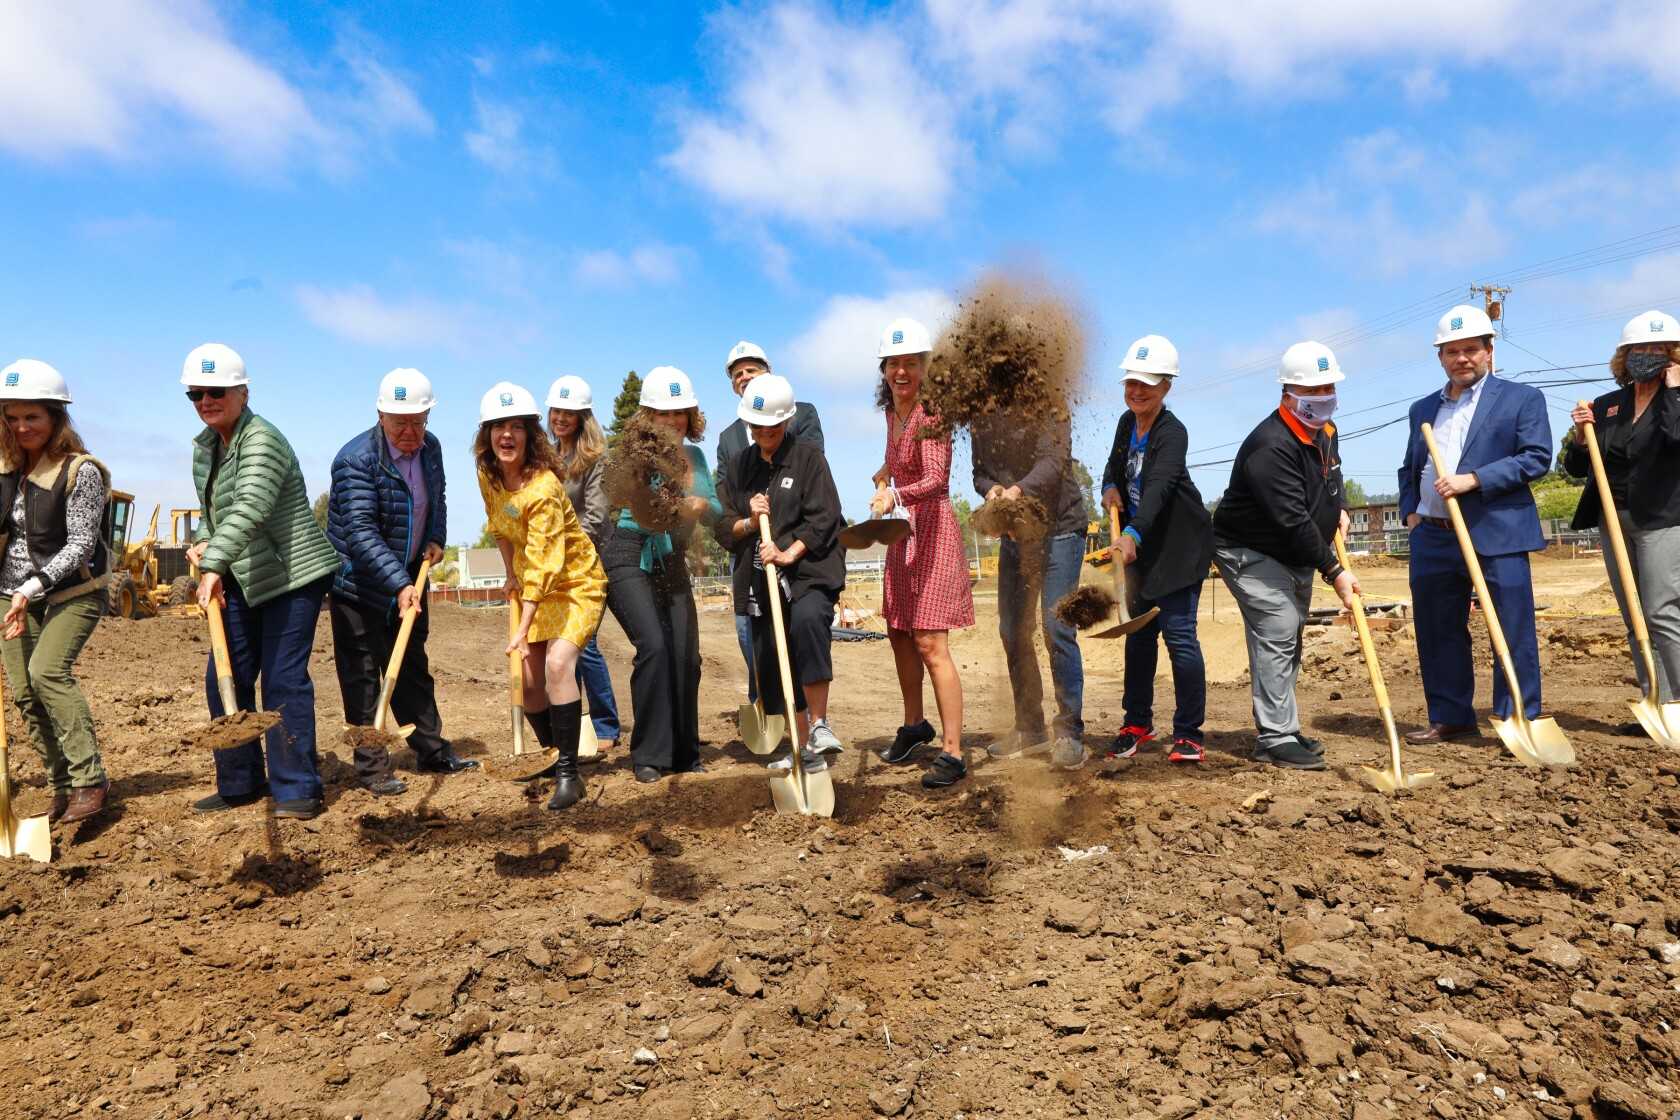 Groundbreaking ceremony for health care and housing campus at 1500 Capitola Road in Live Oak on May 22, 2021.